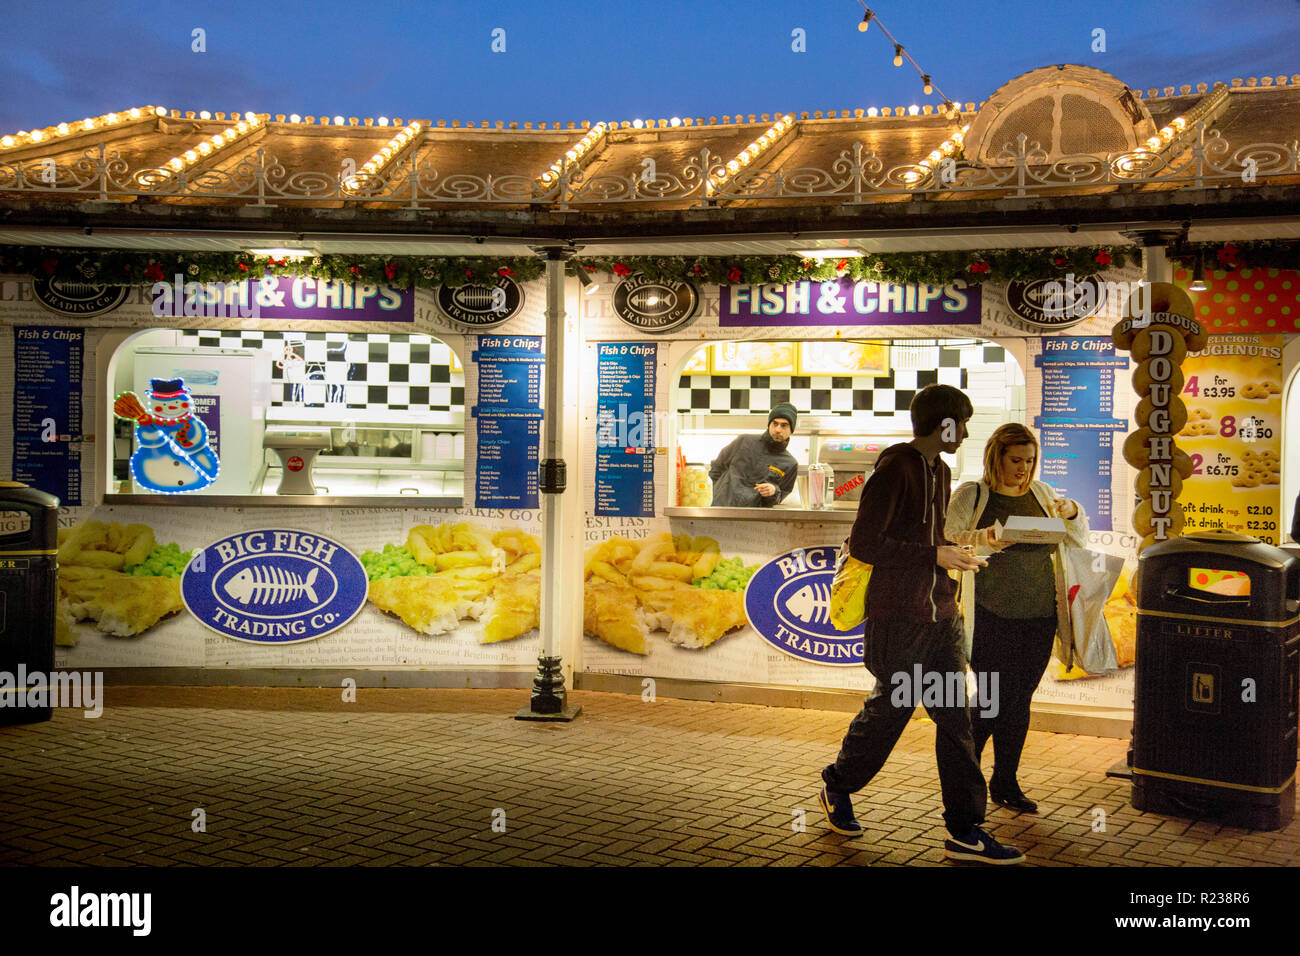 At a fish-and-chip stall on Brighton Pier a young man and woman are buying food. Overhead the roof has rows of light bulbs under an evening sky. - Stock Image